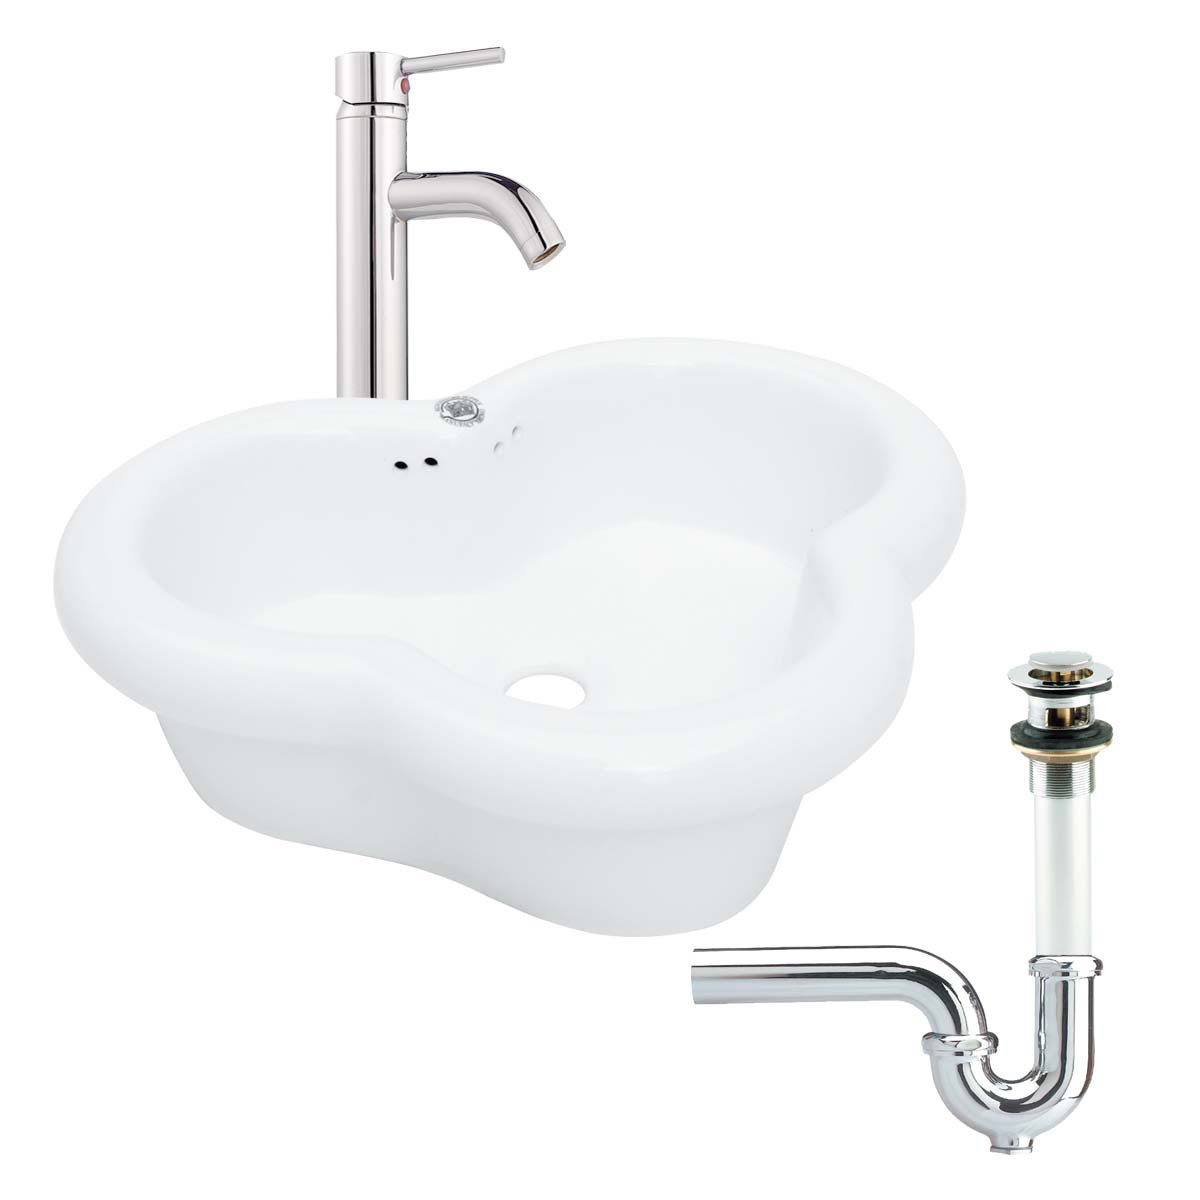 Bathroom Sink Trap : Bathroom Vessel Sink White Clover Chrome Faucet/Drain/P-Trap